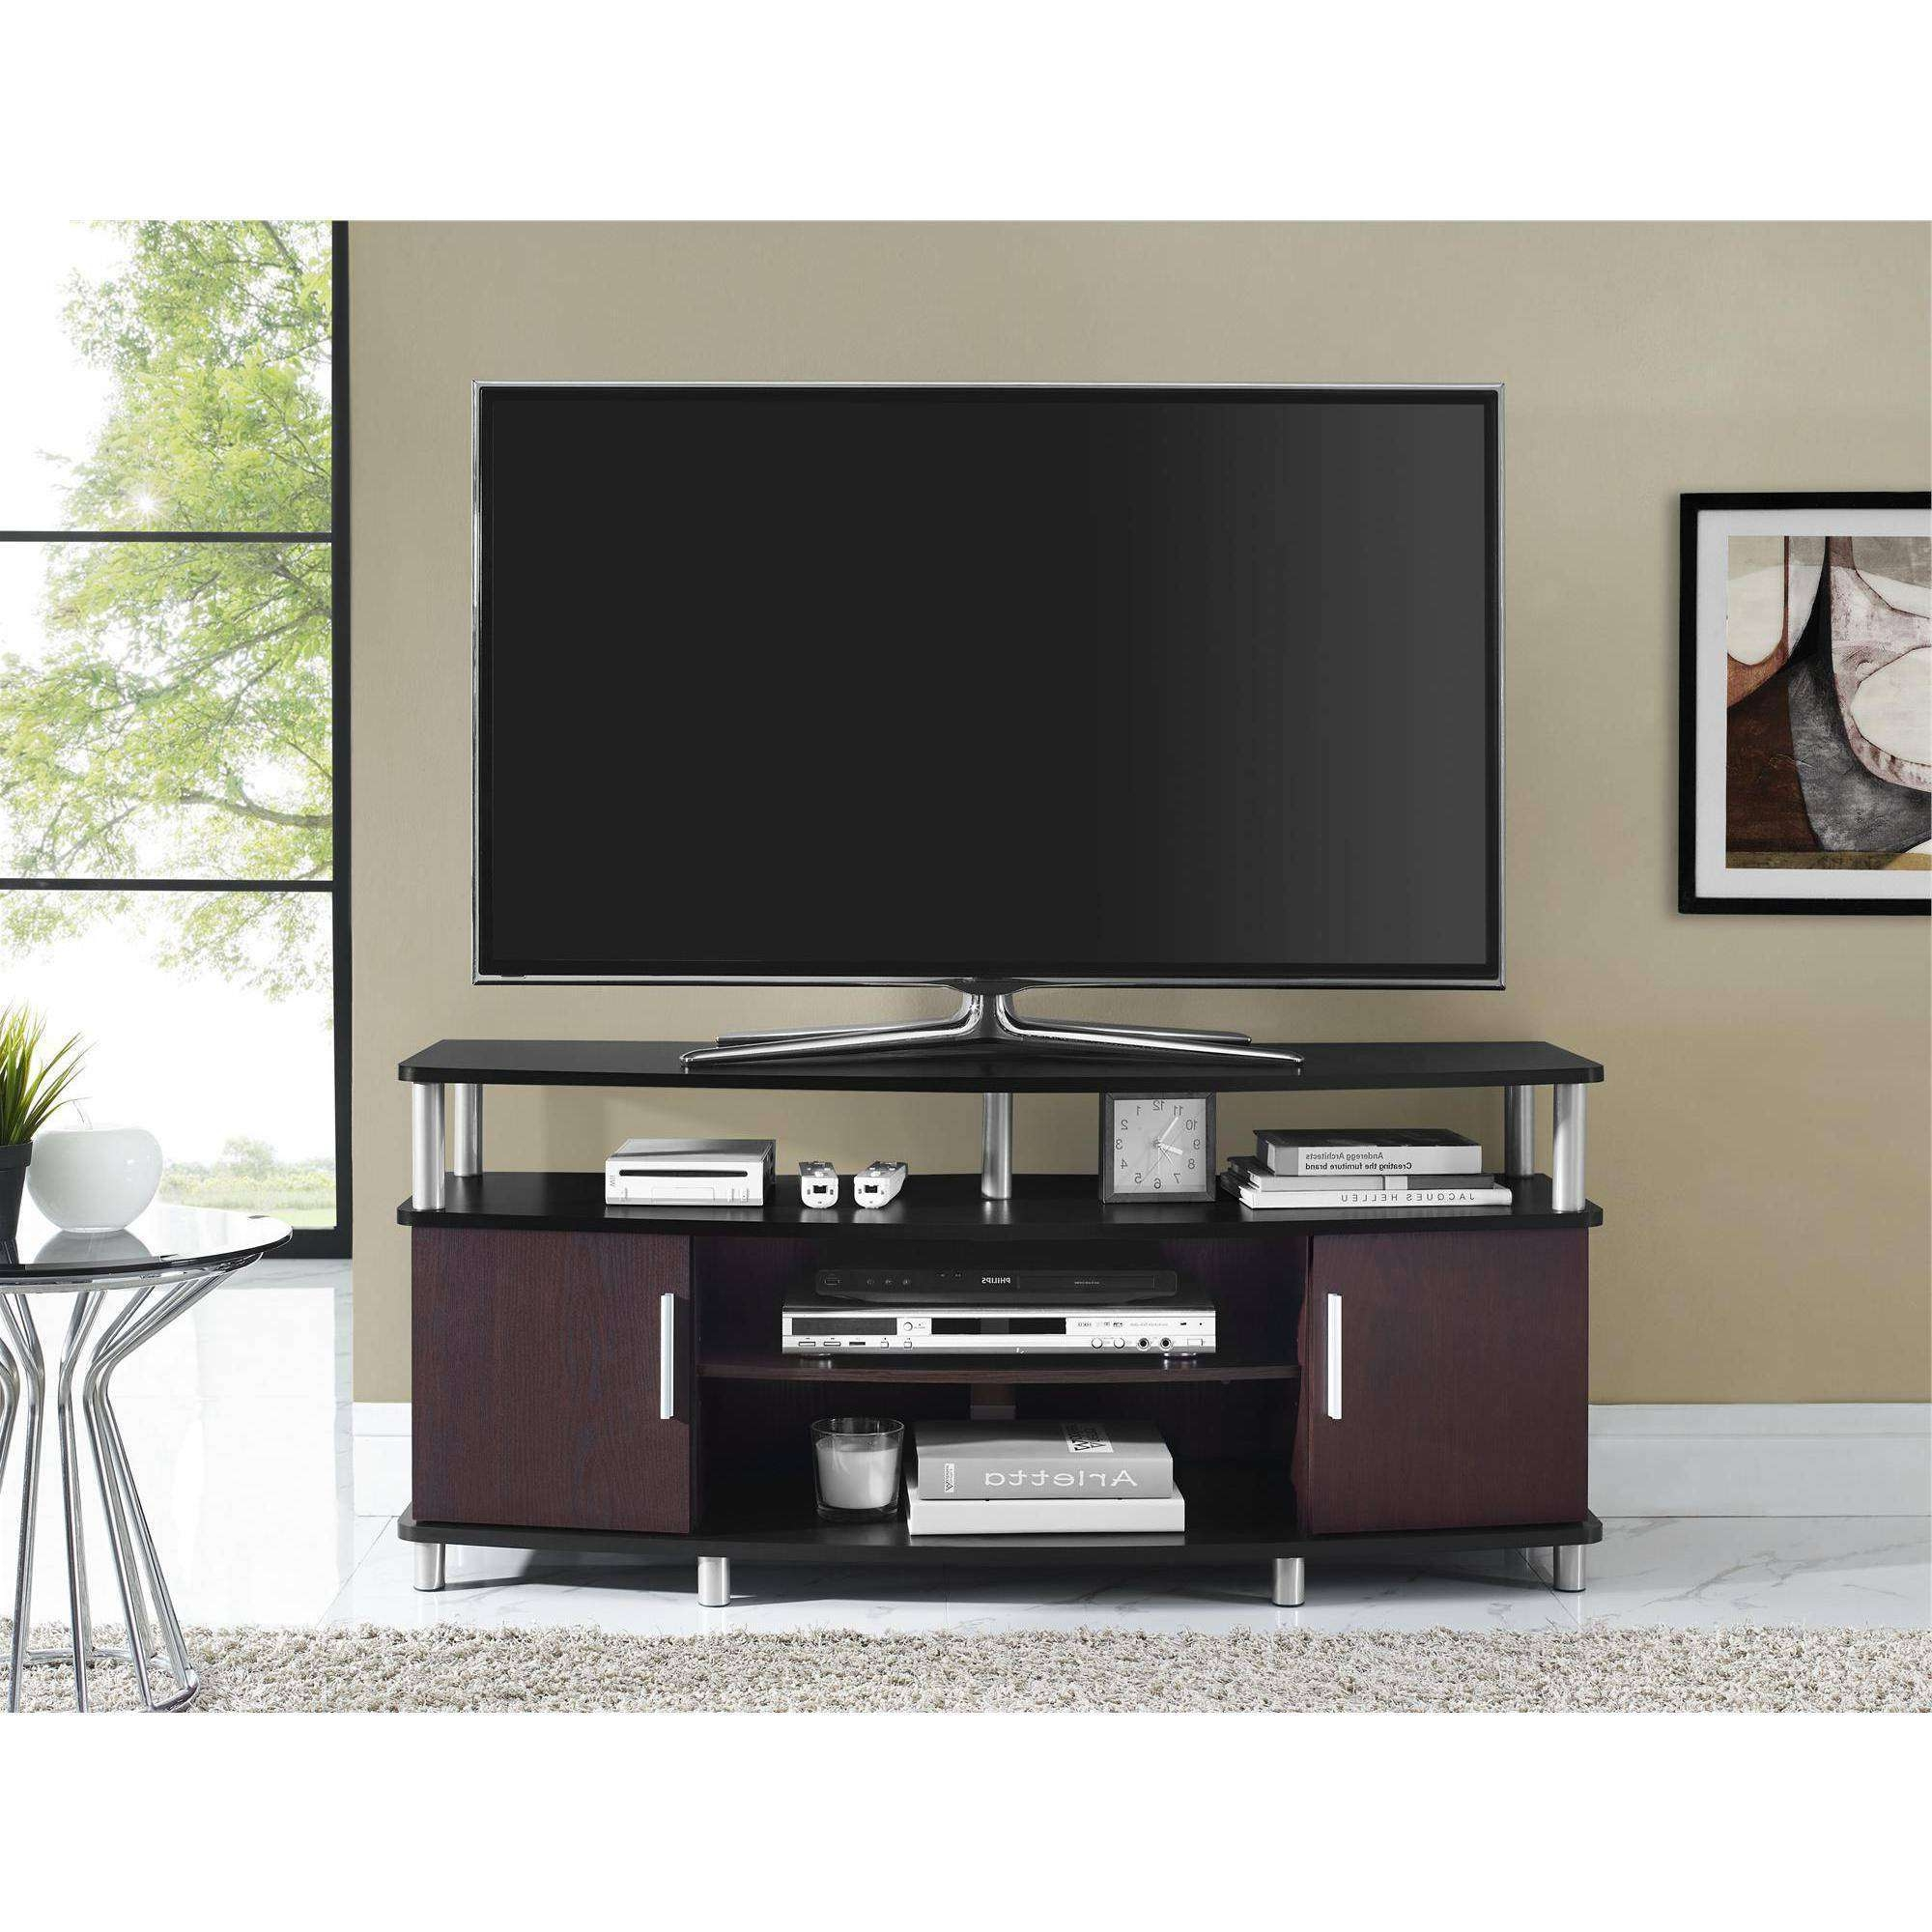 Flat Screen Tv Stands With Mount Furnitures Modern For Inch Intended For Modern Tv Stands With Mount (View 6 of 15)